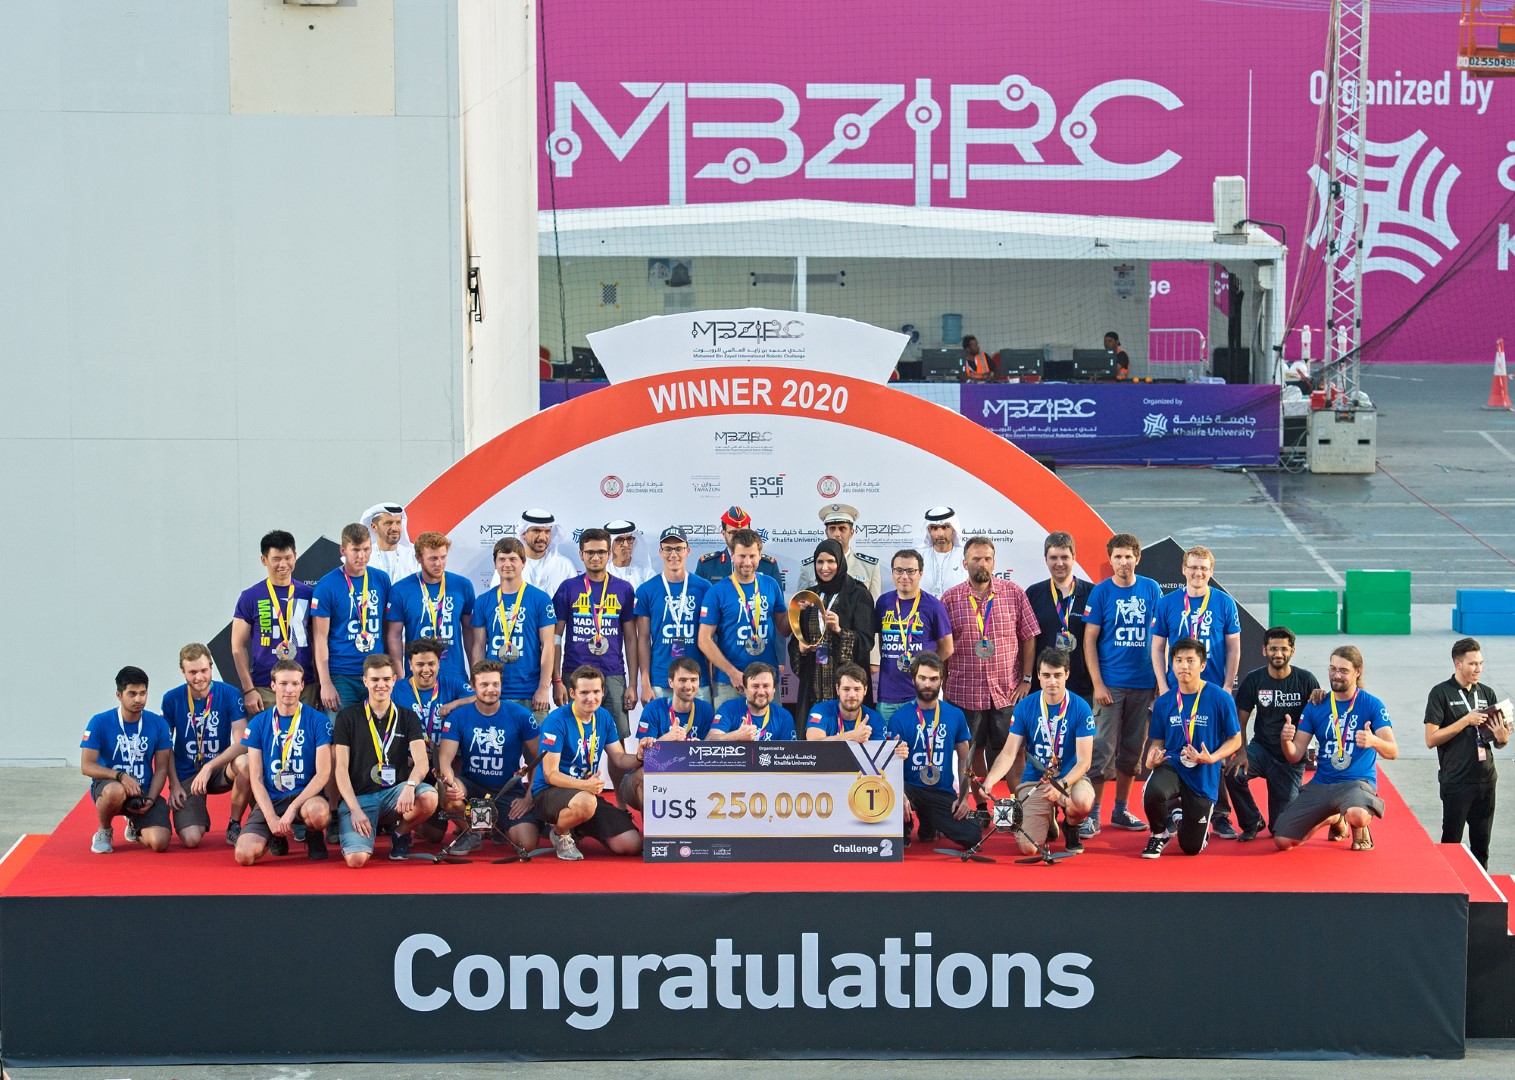 Czech, Pennsylvania, NYU team win robotics challenge in Abu Dhabi